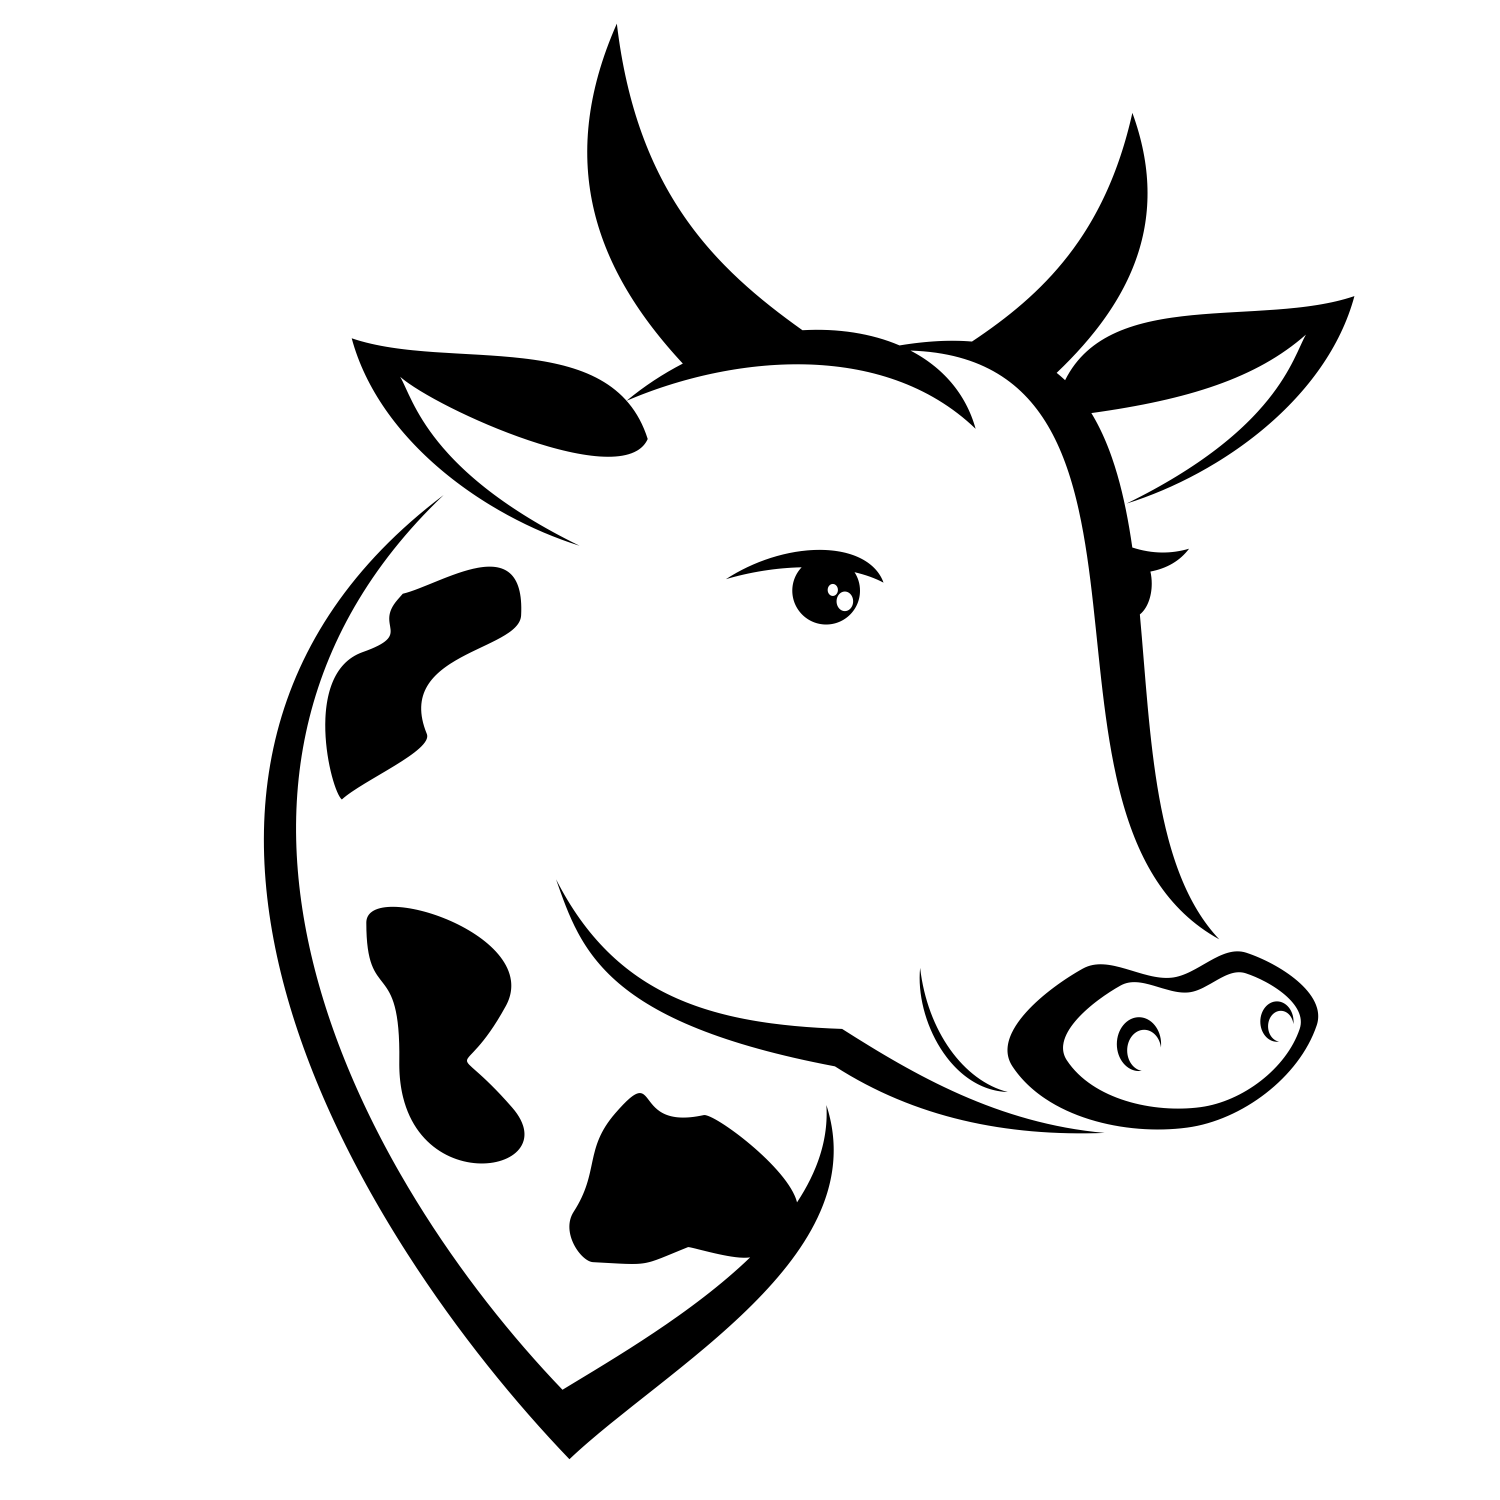 1500x1500 Free Cow Head Clipart Vector For Use S